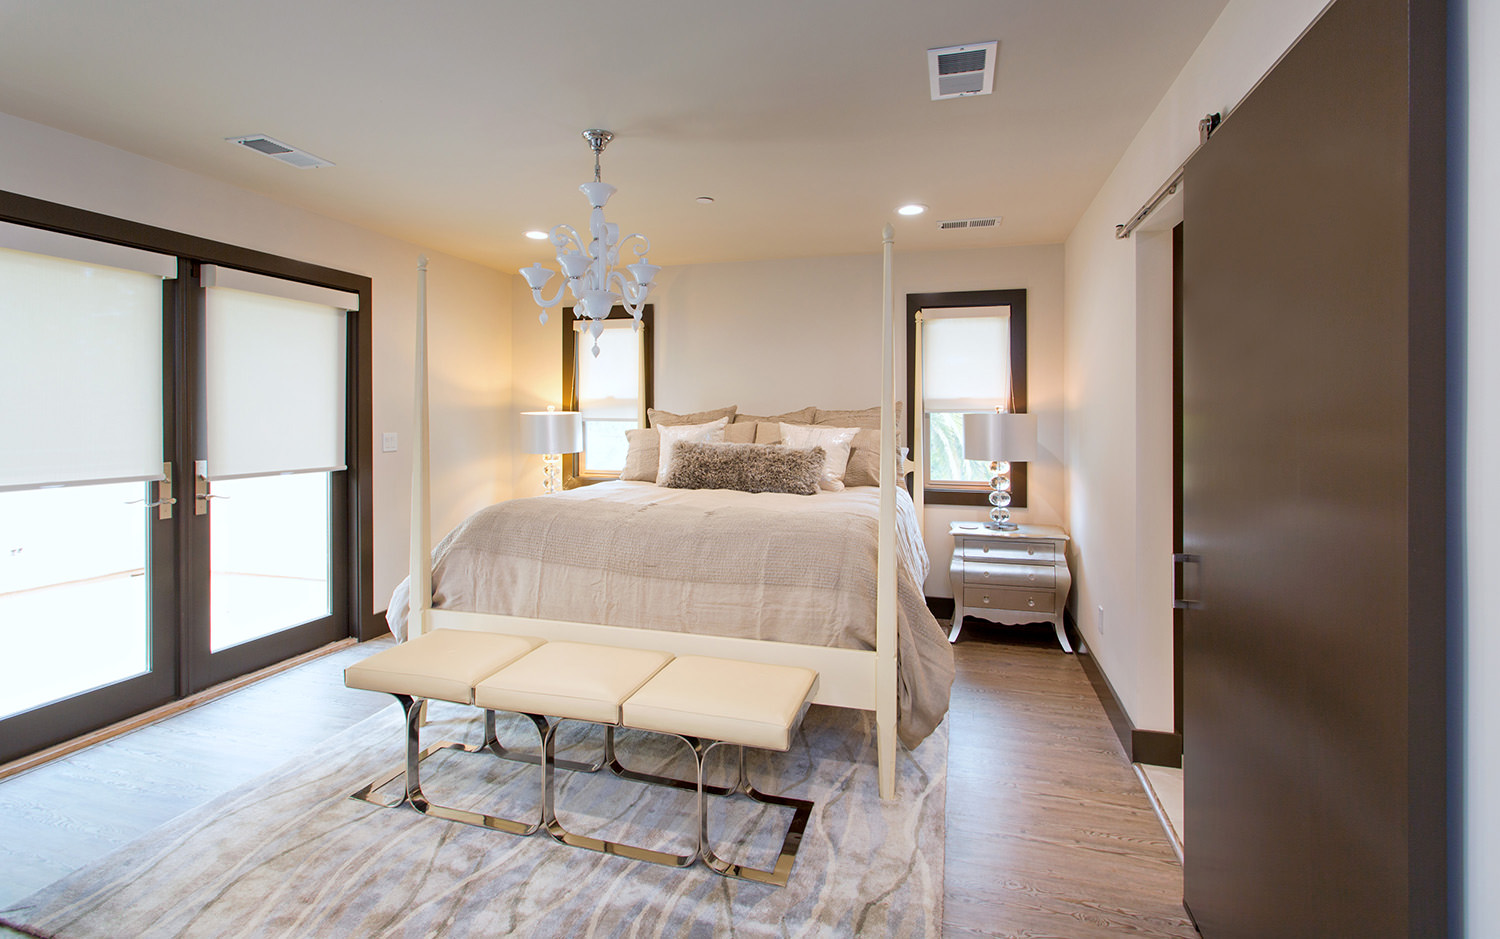 bedroom-interior-design-los-altos-california-ktj-design-co-7.jpg